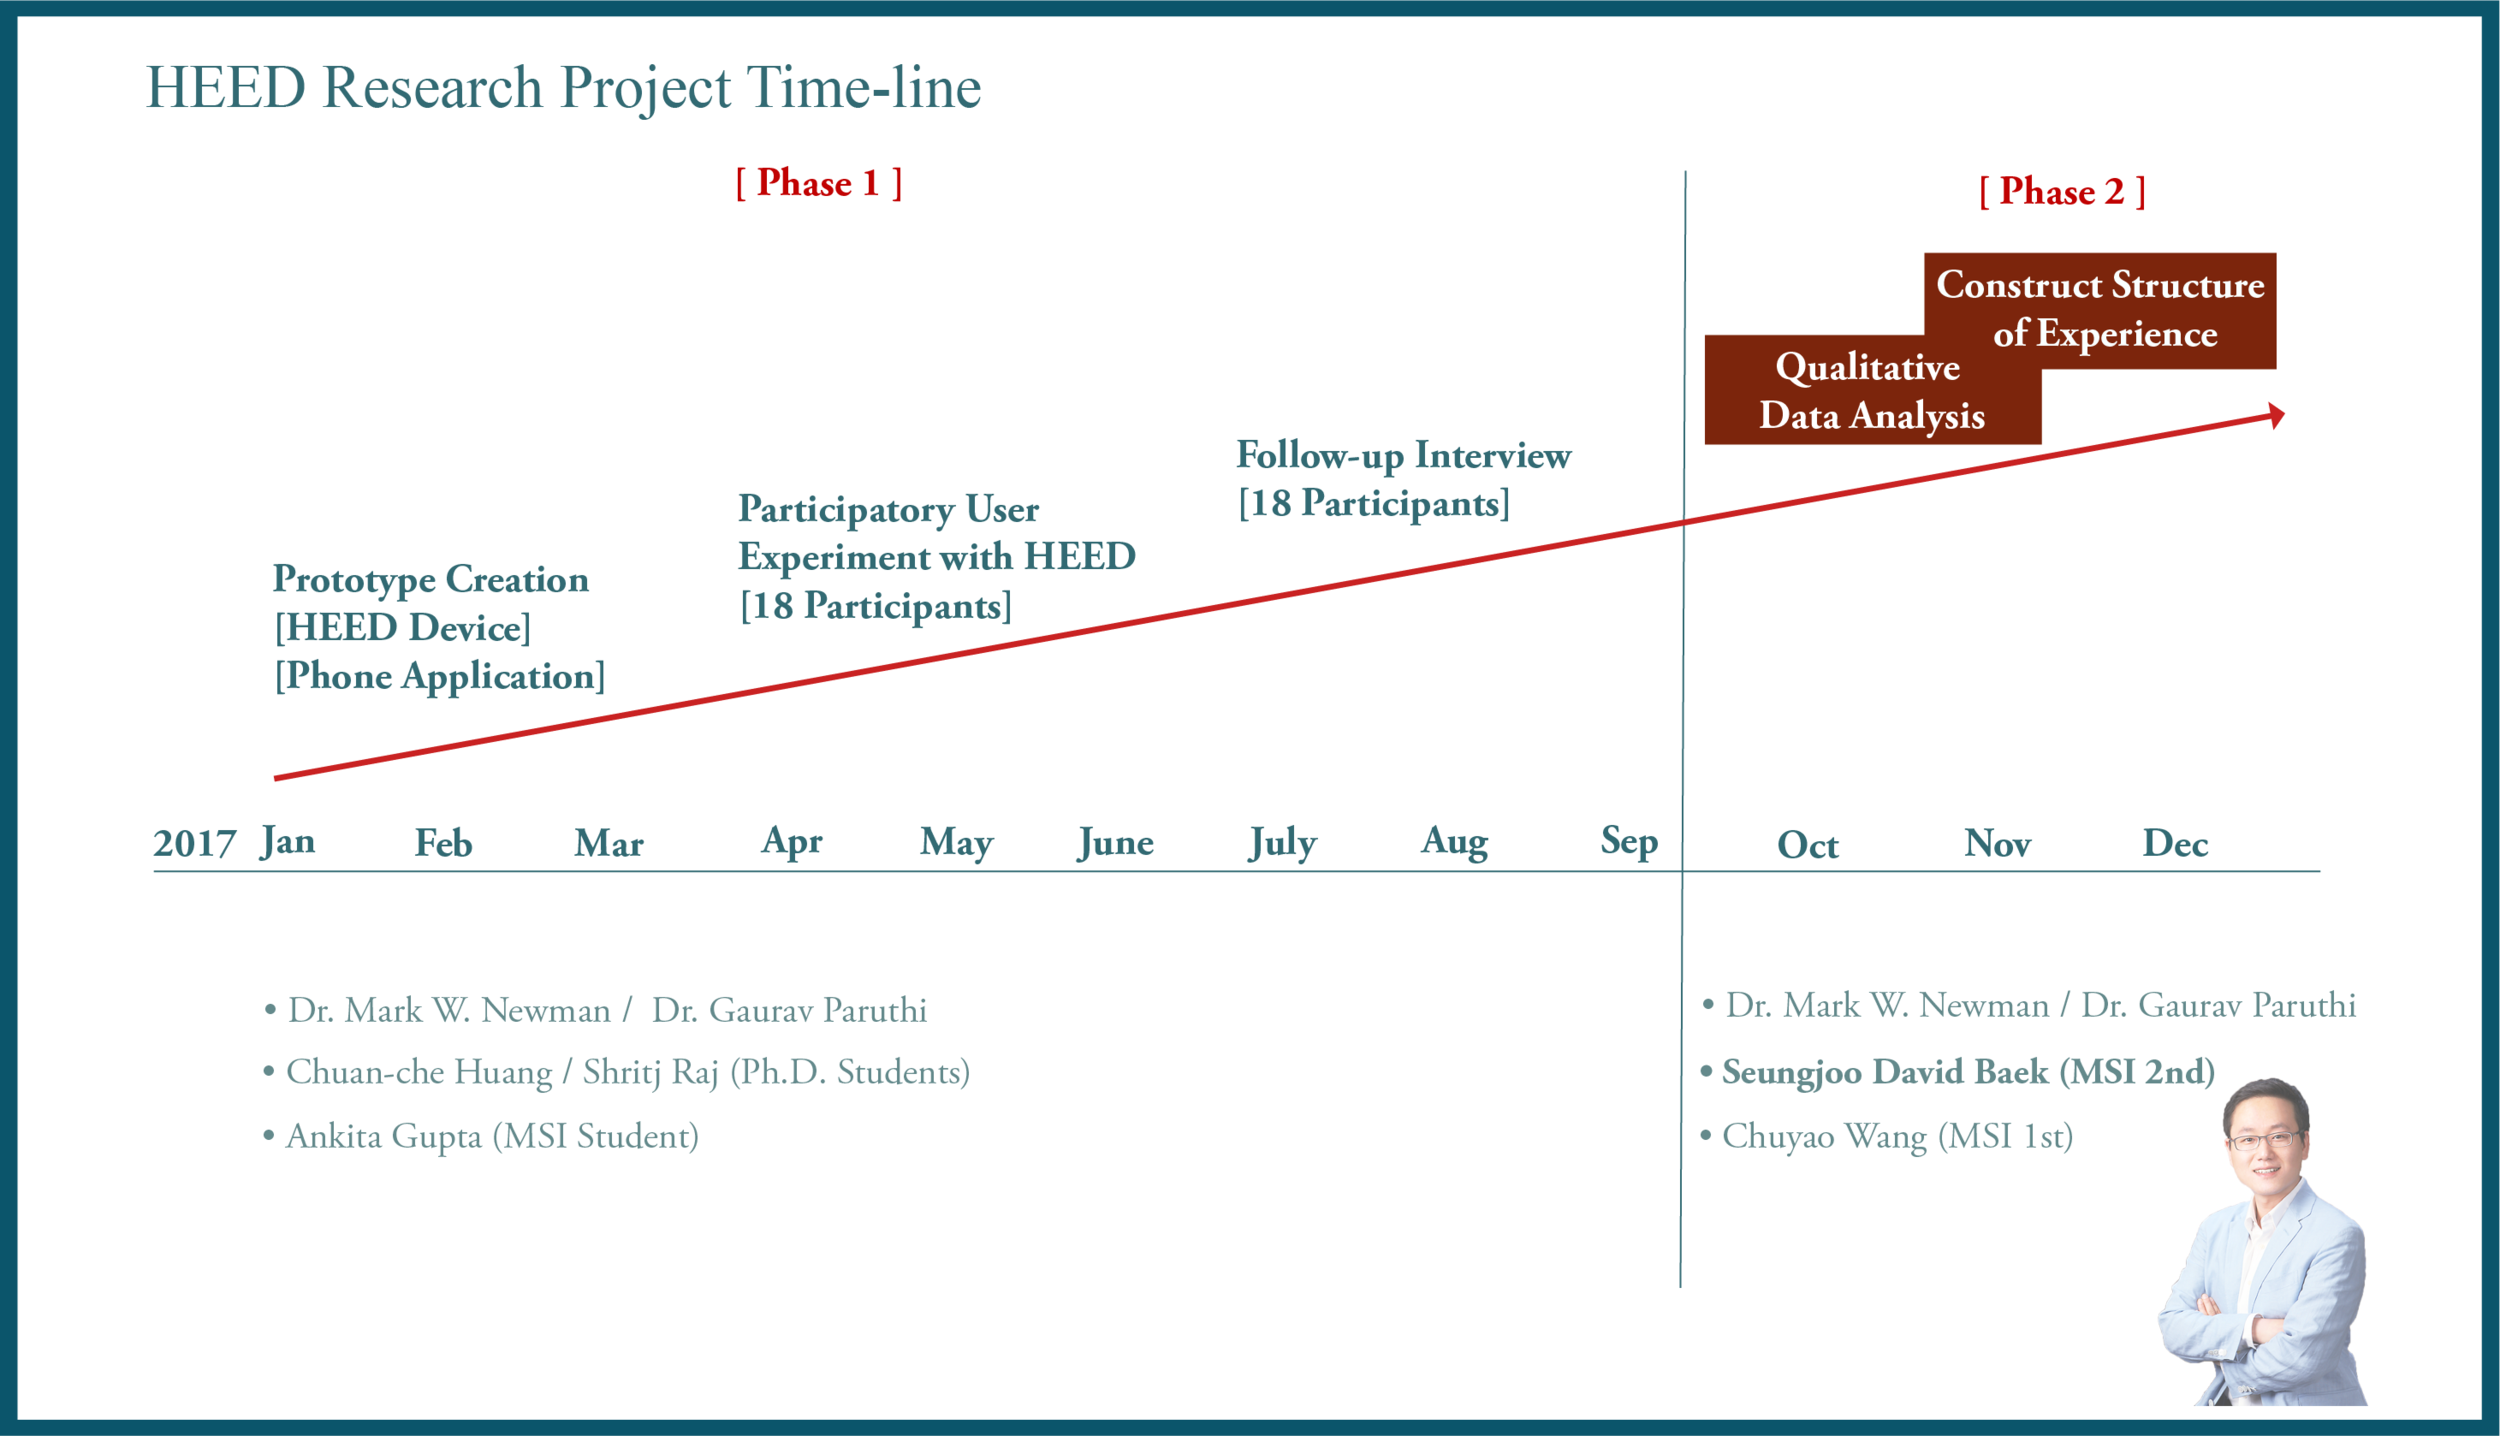 HEED_TimeLine.png